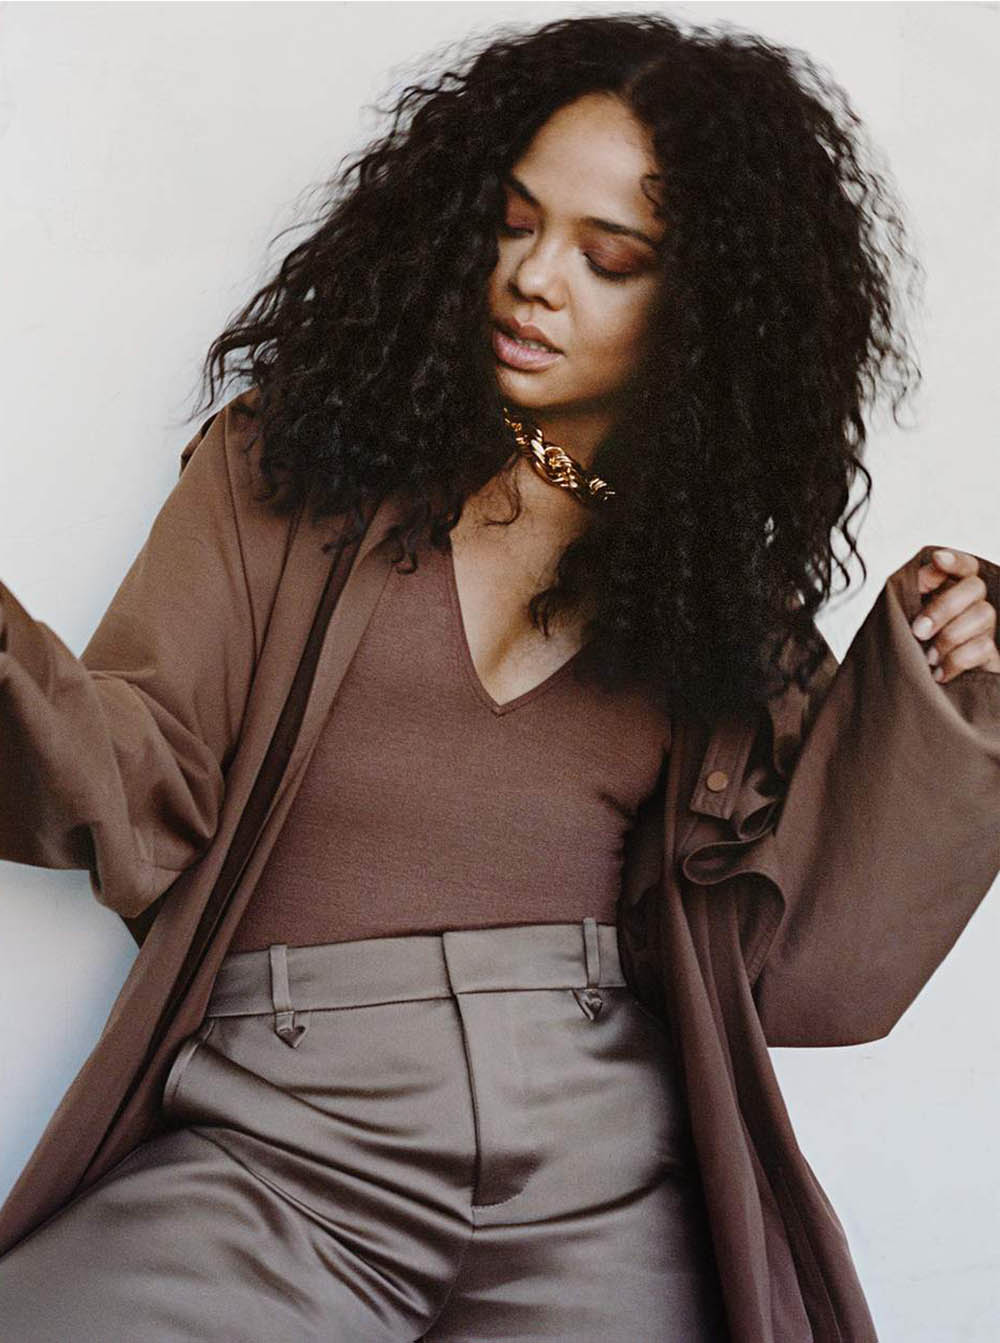 Tessa Thompson covers Porter Magazine August 10th, 2020 by Shaniqwa Jarvis